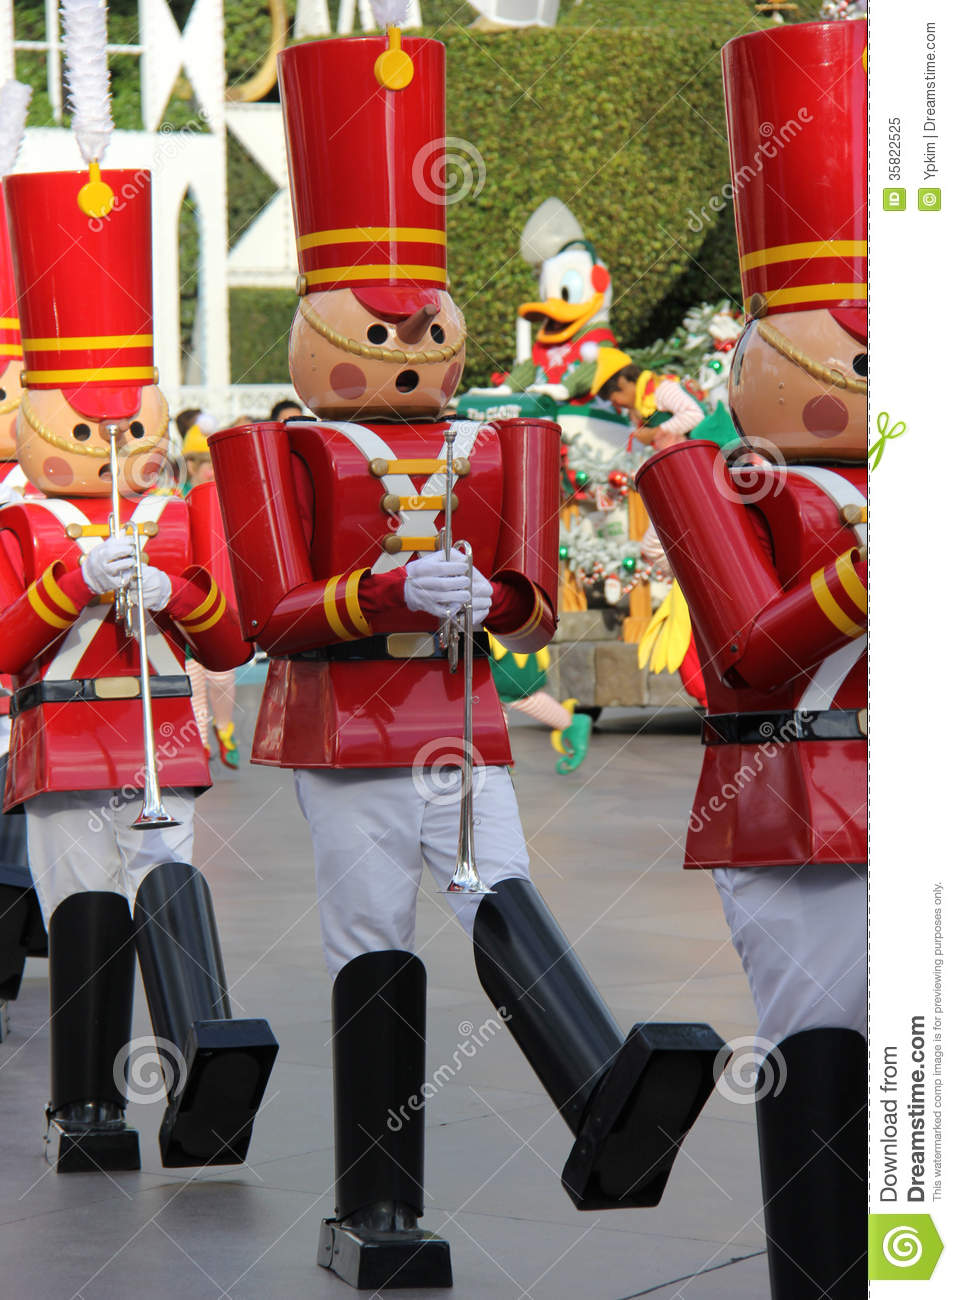 christmas toy soldier - photo #44